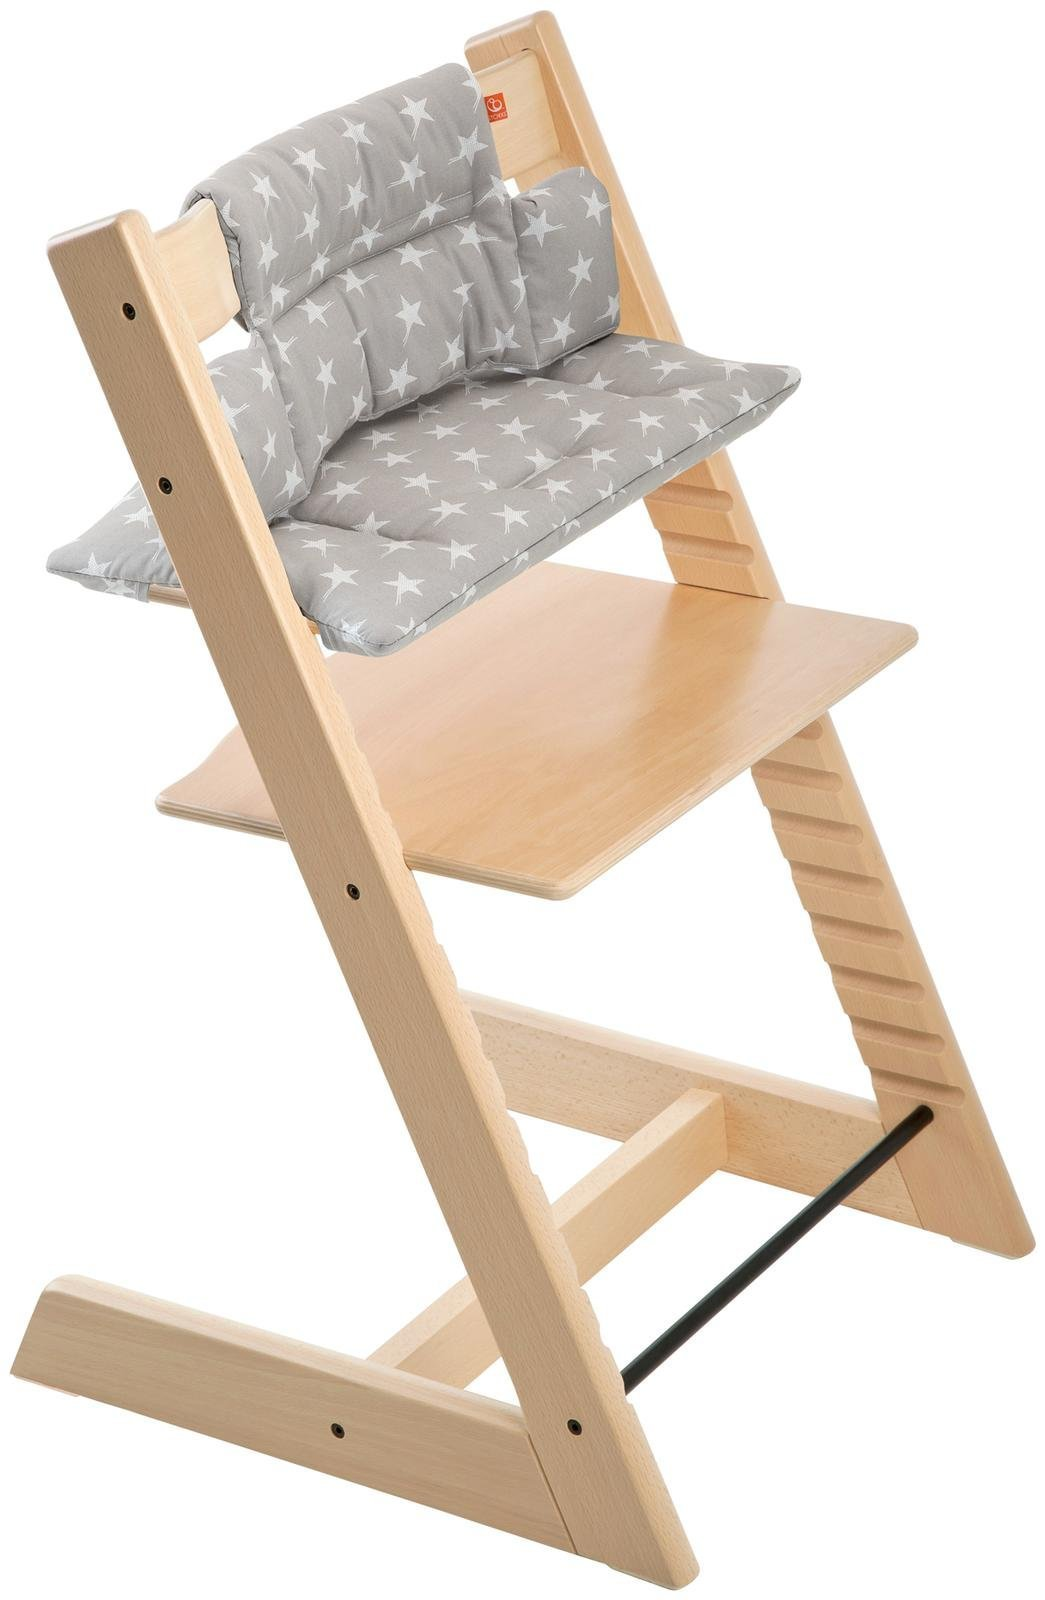 Stokke Tripp Trapp Cushion, Grey Star